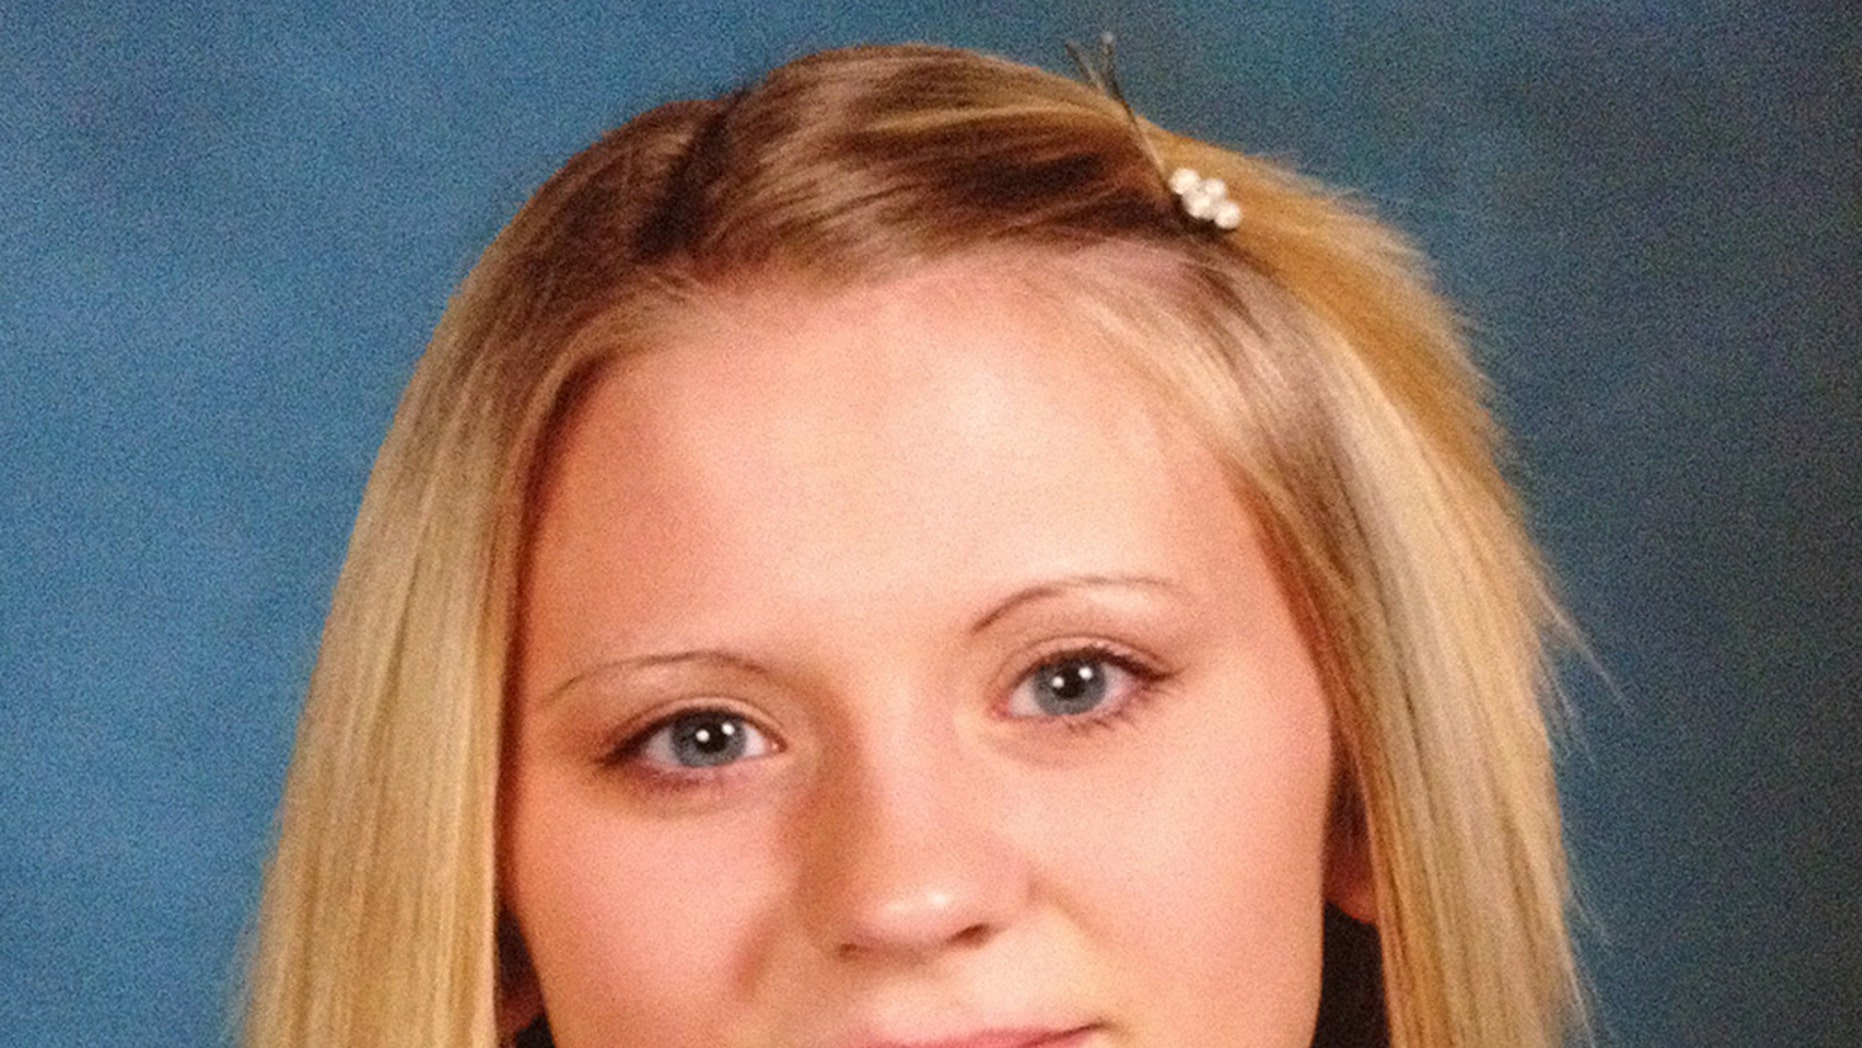 Jessica Chambers, 19, was killed in 2014 near Courtland, Mississippi.